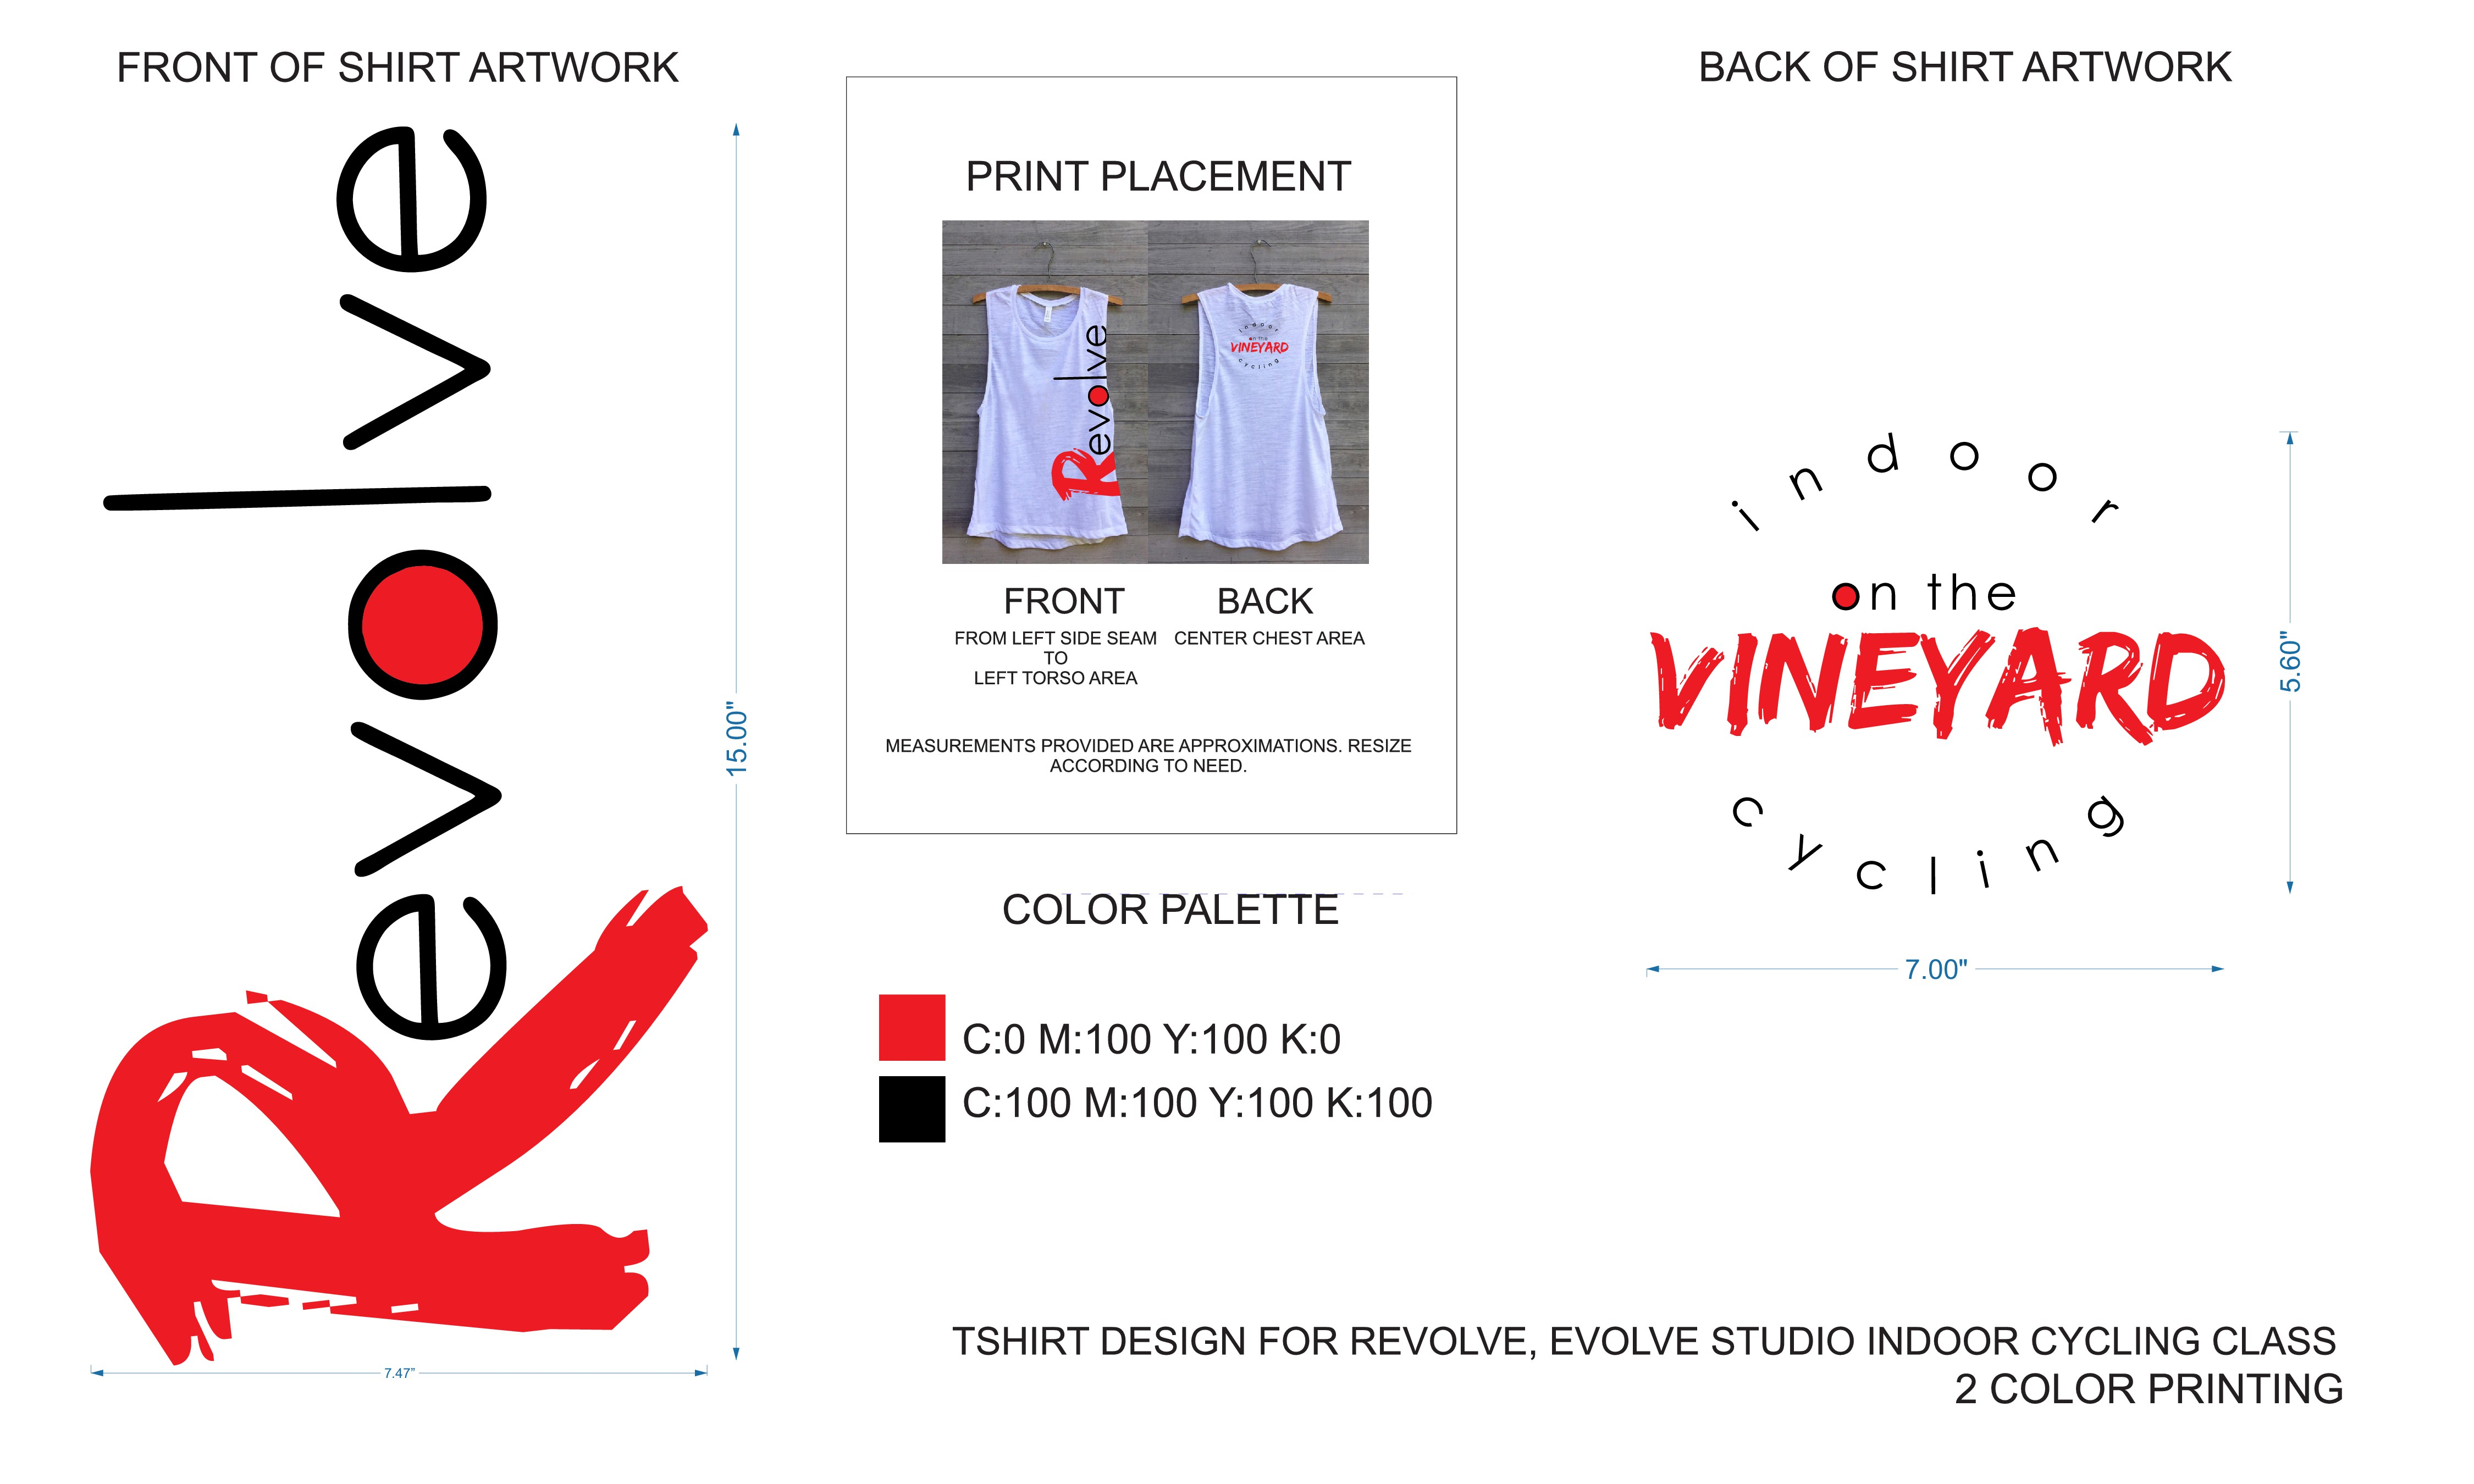 Design a t-shirt for Revolve, Evolve studio's indoor cycling class!